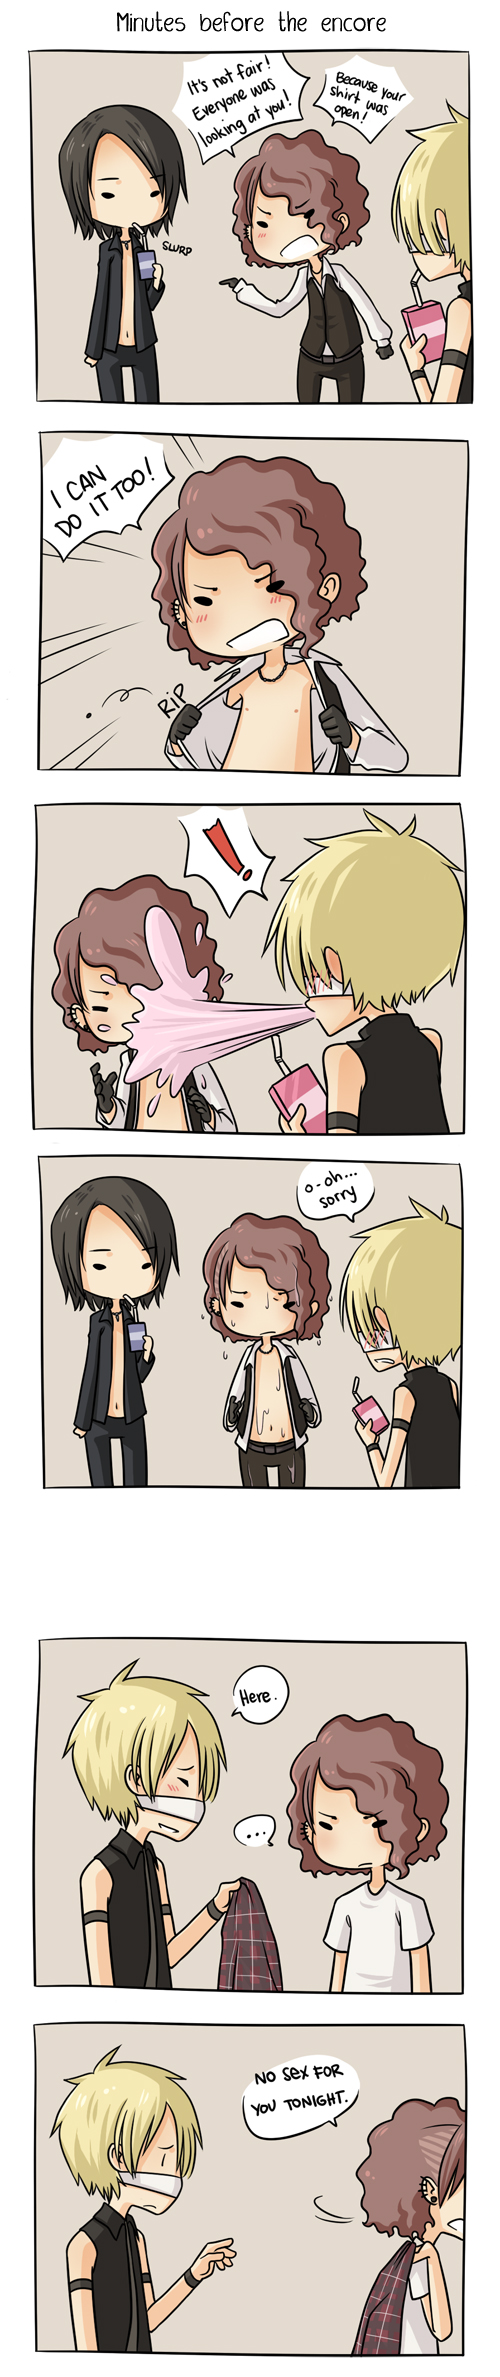 Tags: Anime, Reita (The GazettE), Ruki (The GazettE), Aoi (The GazettE), Patch On The Nose, Artist Request, Comic, The GazettE